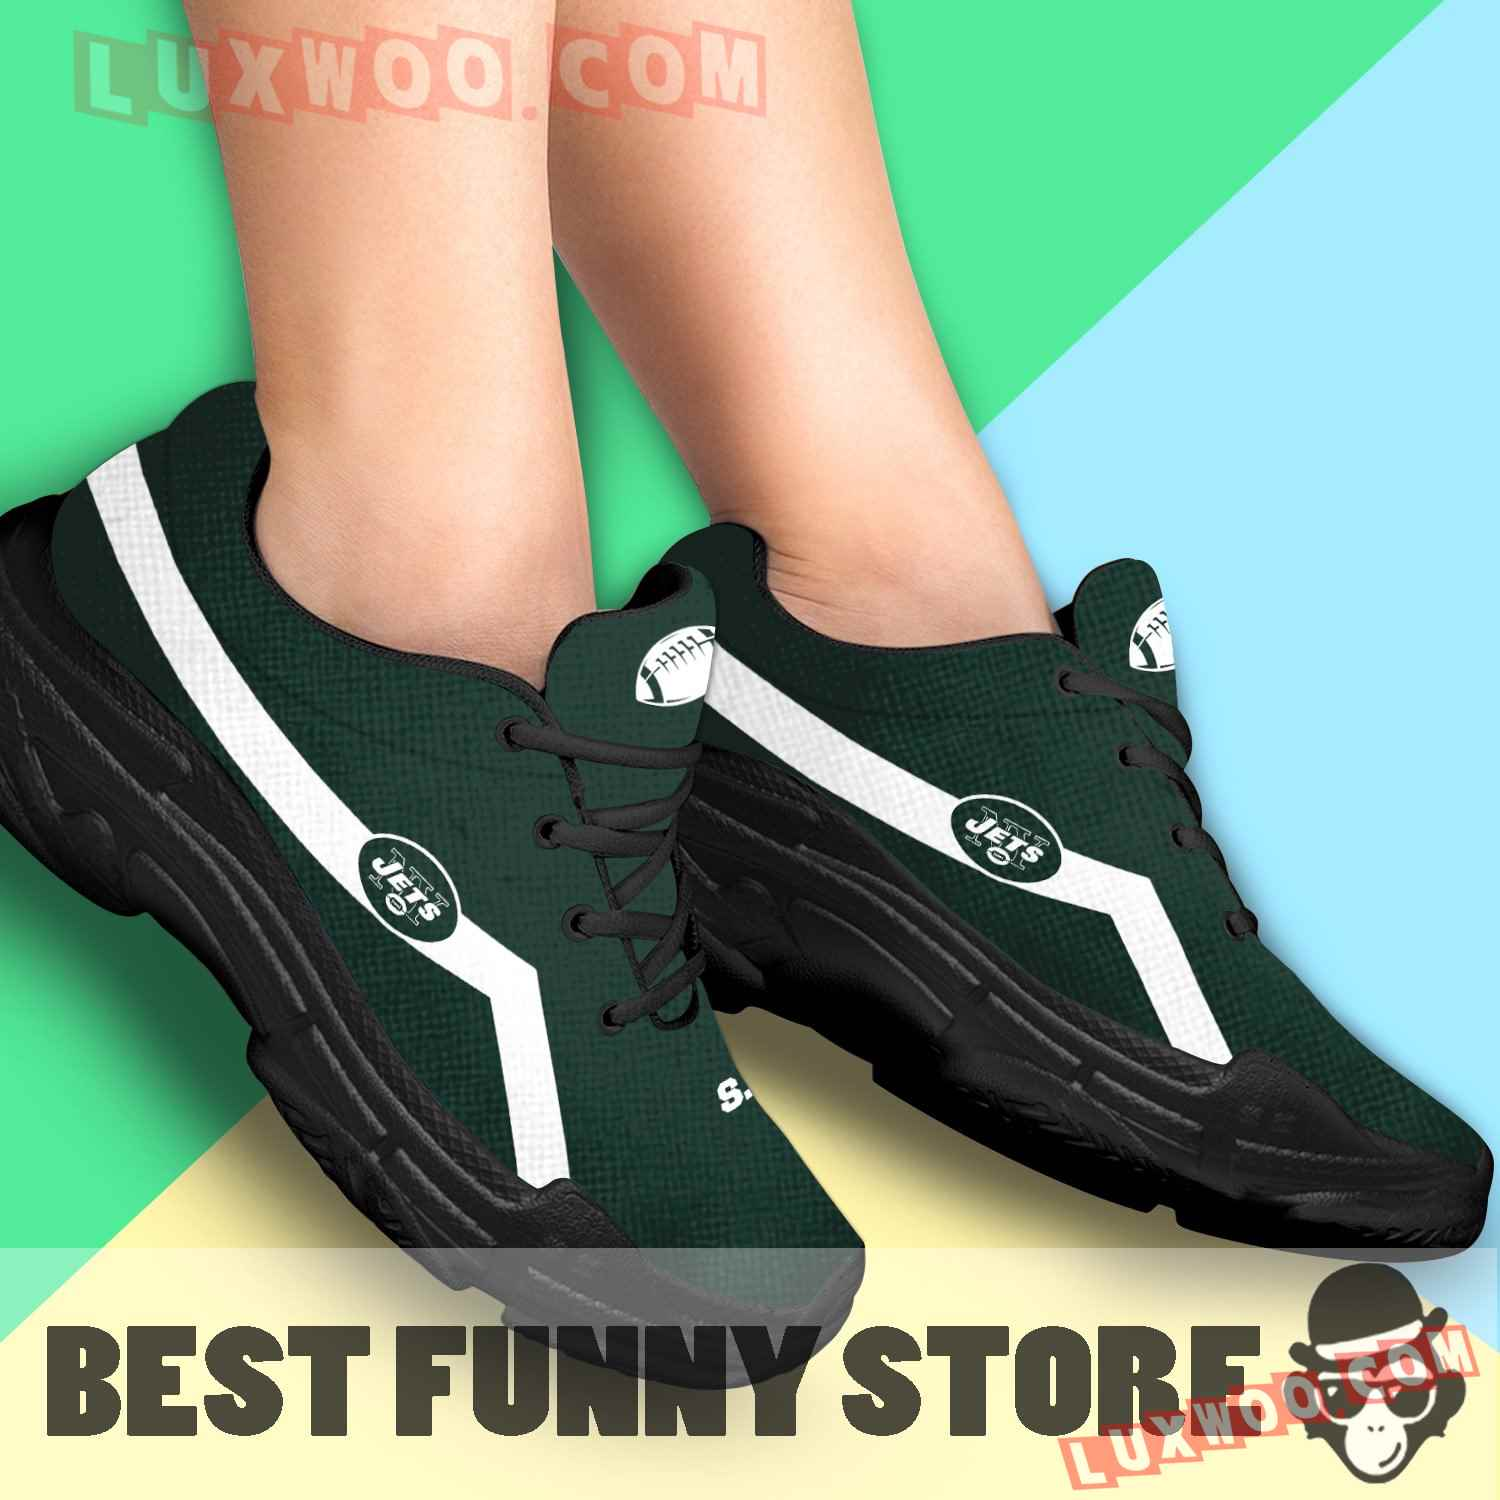 Edition Chunky Sneakers With Line New York Jets Shoes